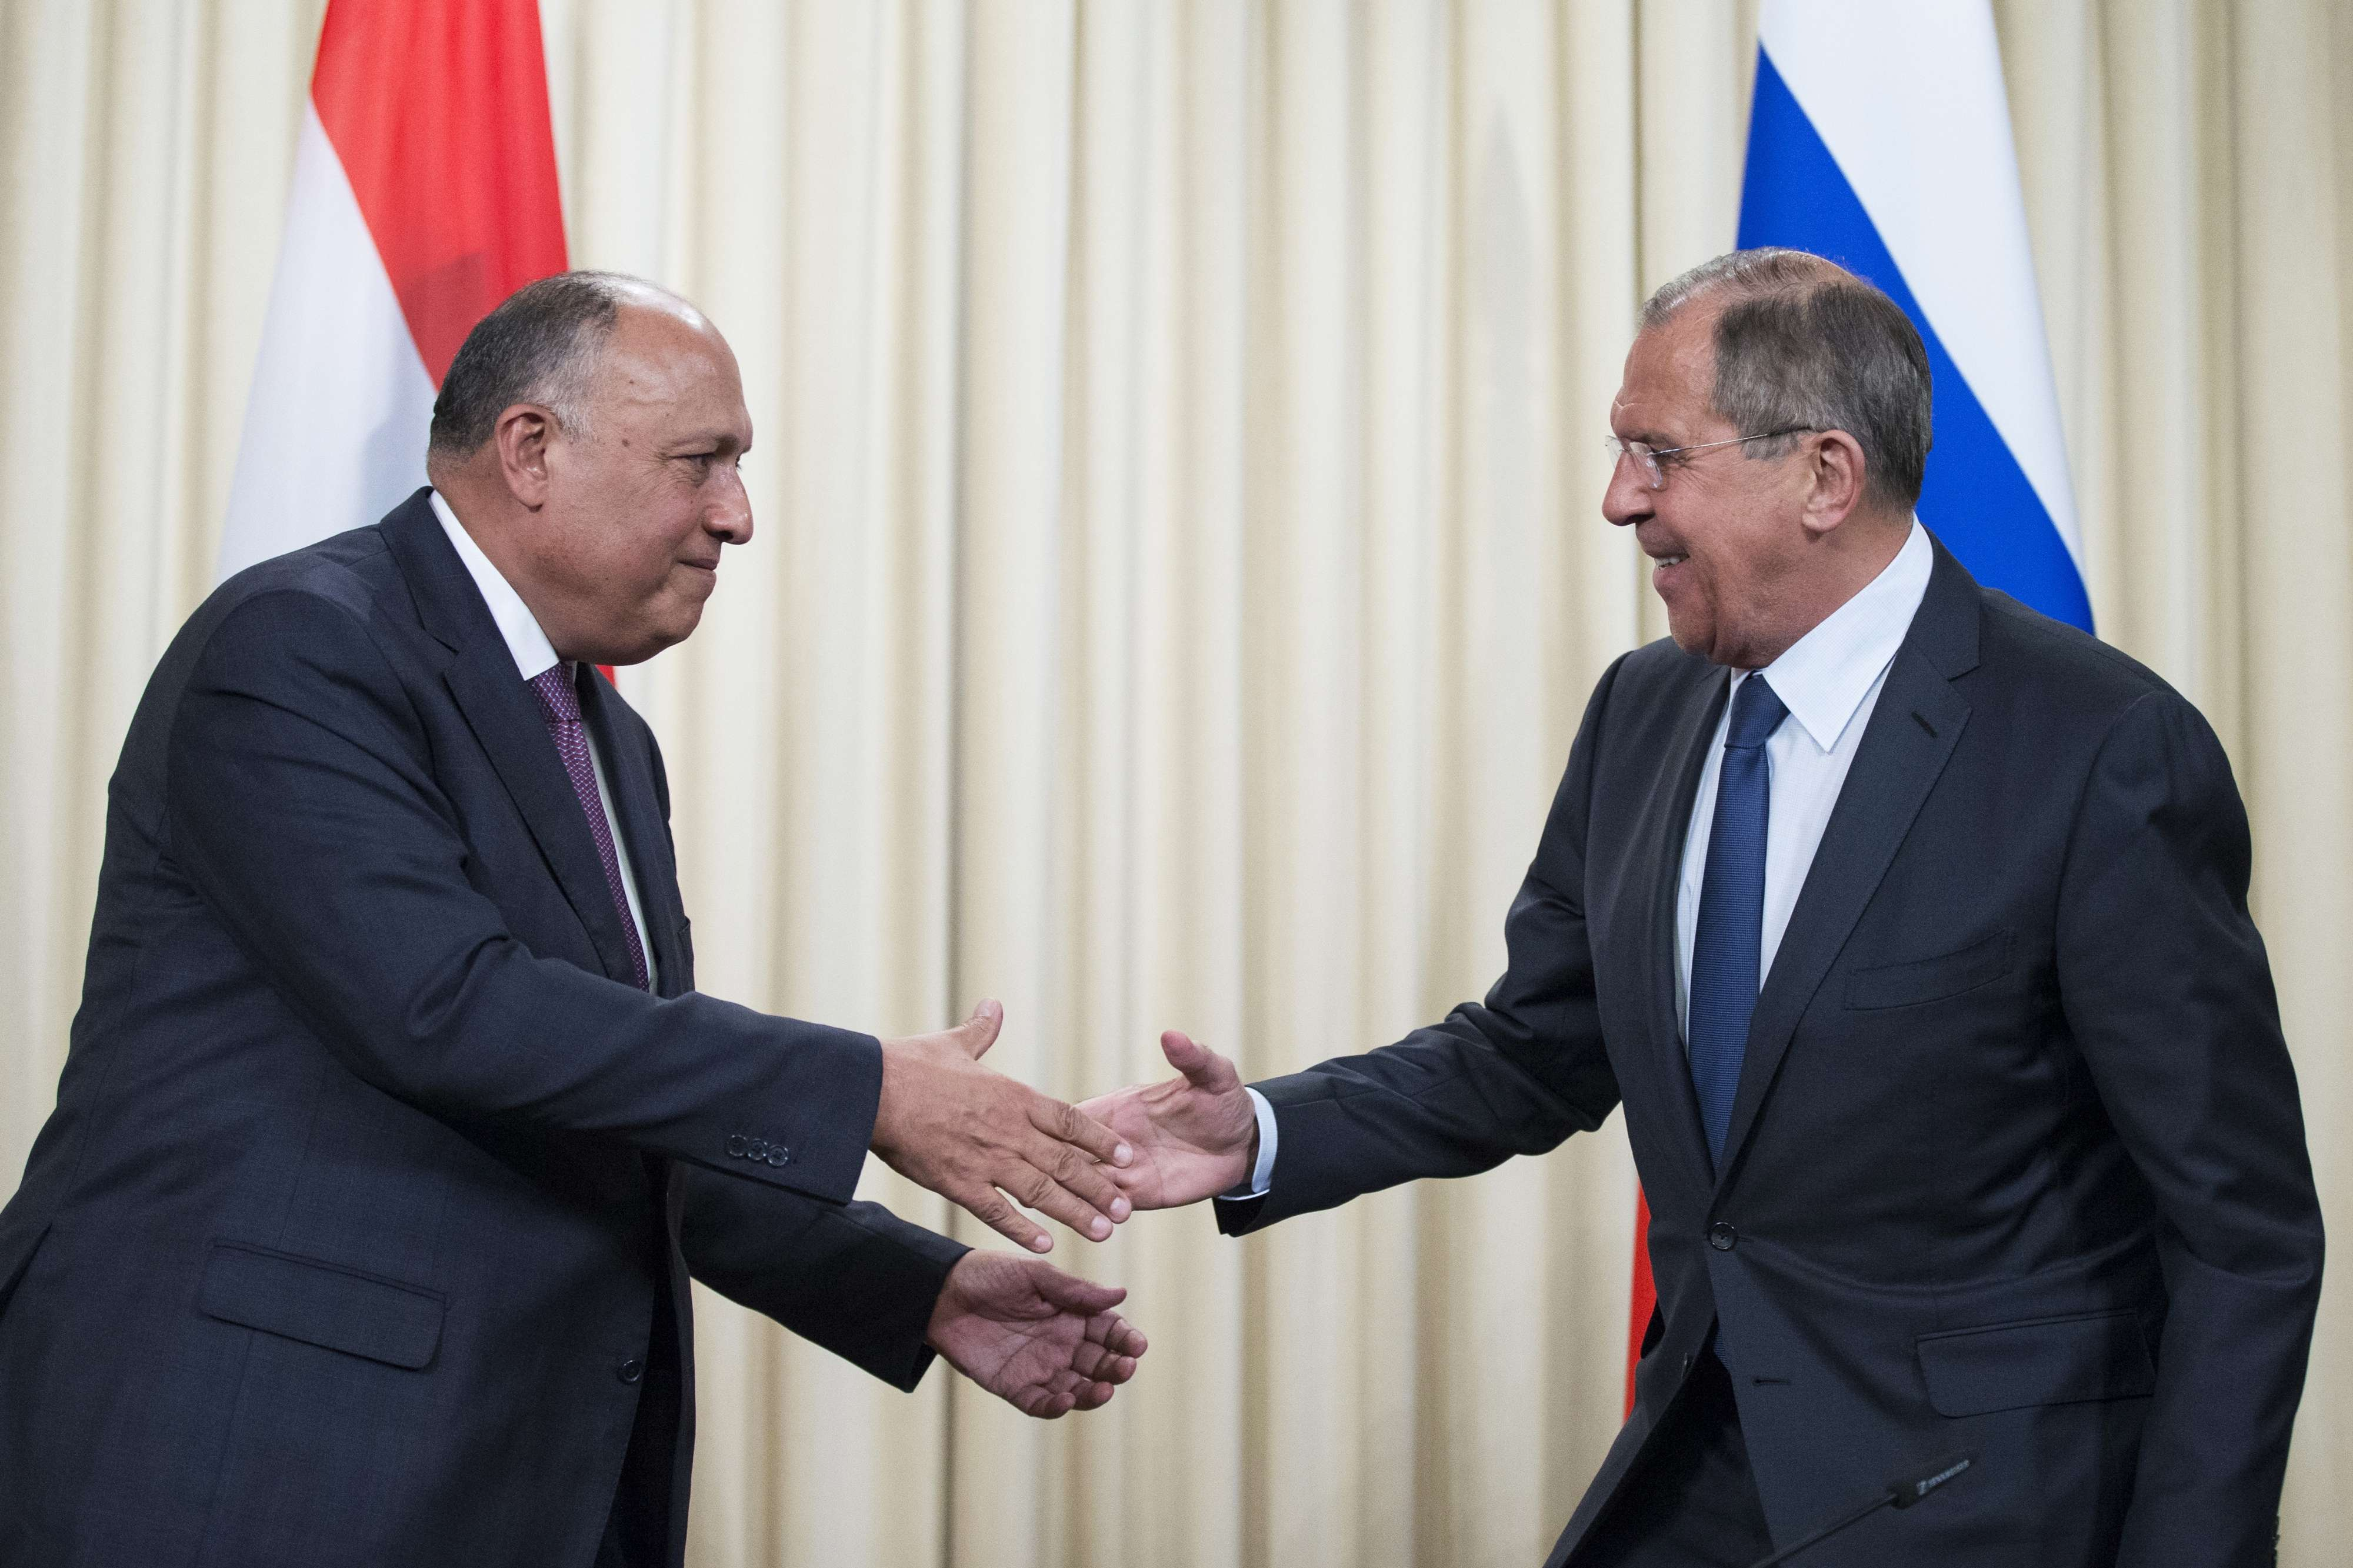 Close cooperation. Russian Foreign Minister Sergei Lavrov (R) shakes hands with Egyptian Foreign Minister Sameh Shoukry  after a joint news conference in Moscow, on May 14. (AP)